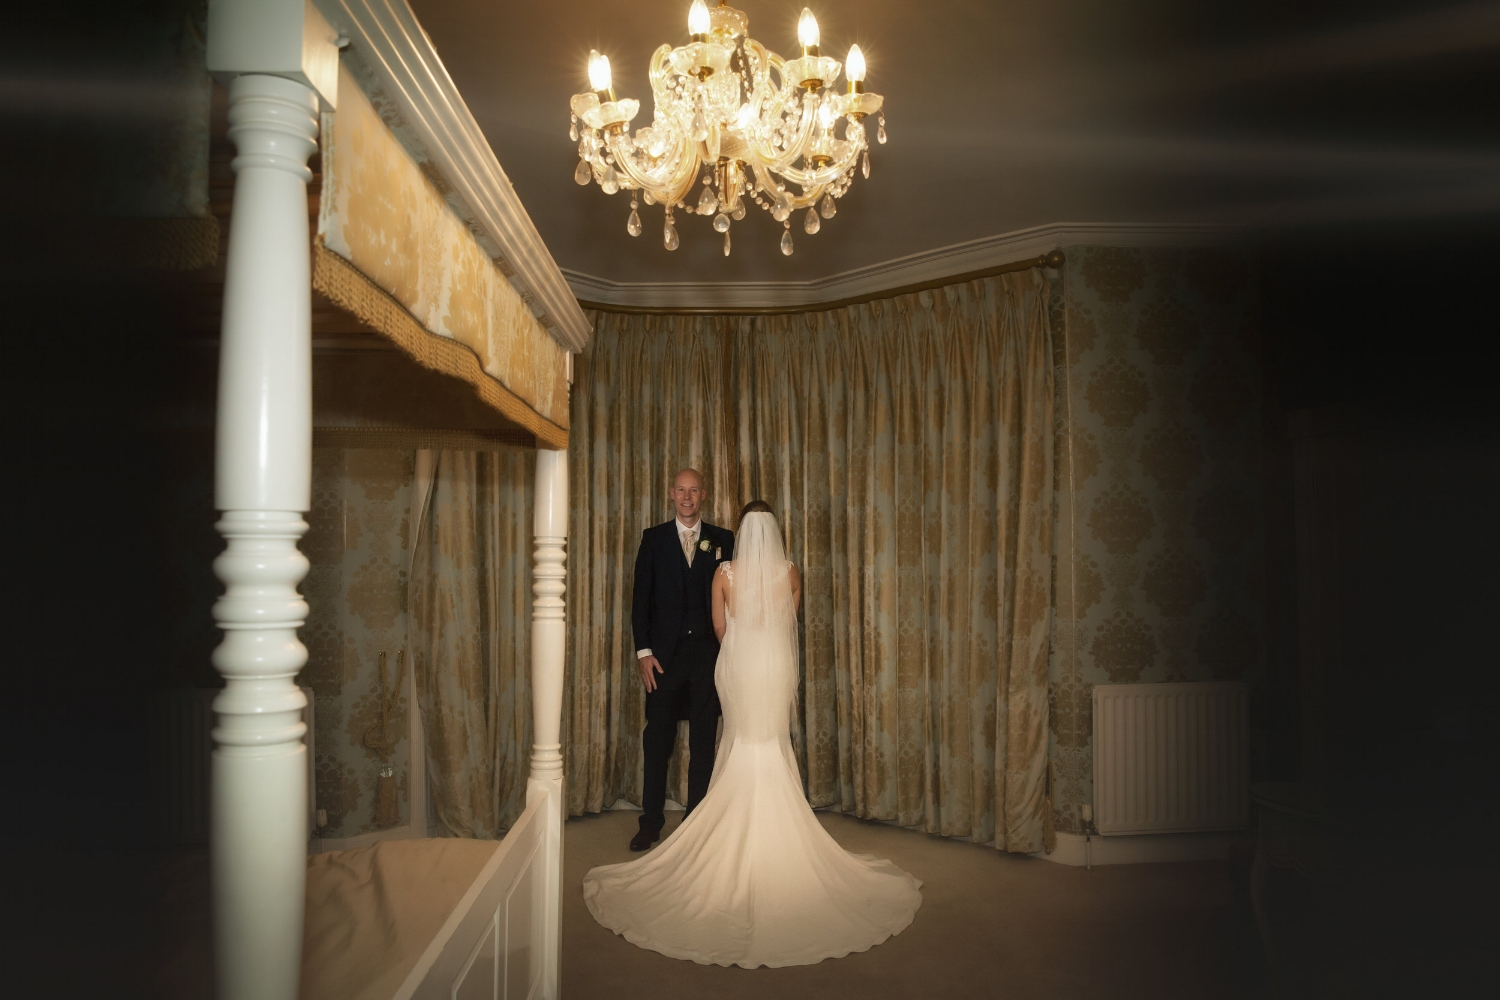 Wayne Hudson, Imagery by hudson, lucria creative, photography, photographer, wedding, bride, groom, Coventry, Warwickshire, finding the right wedding photographer for you